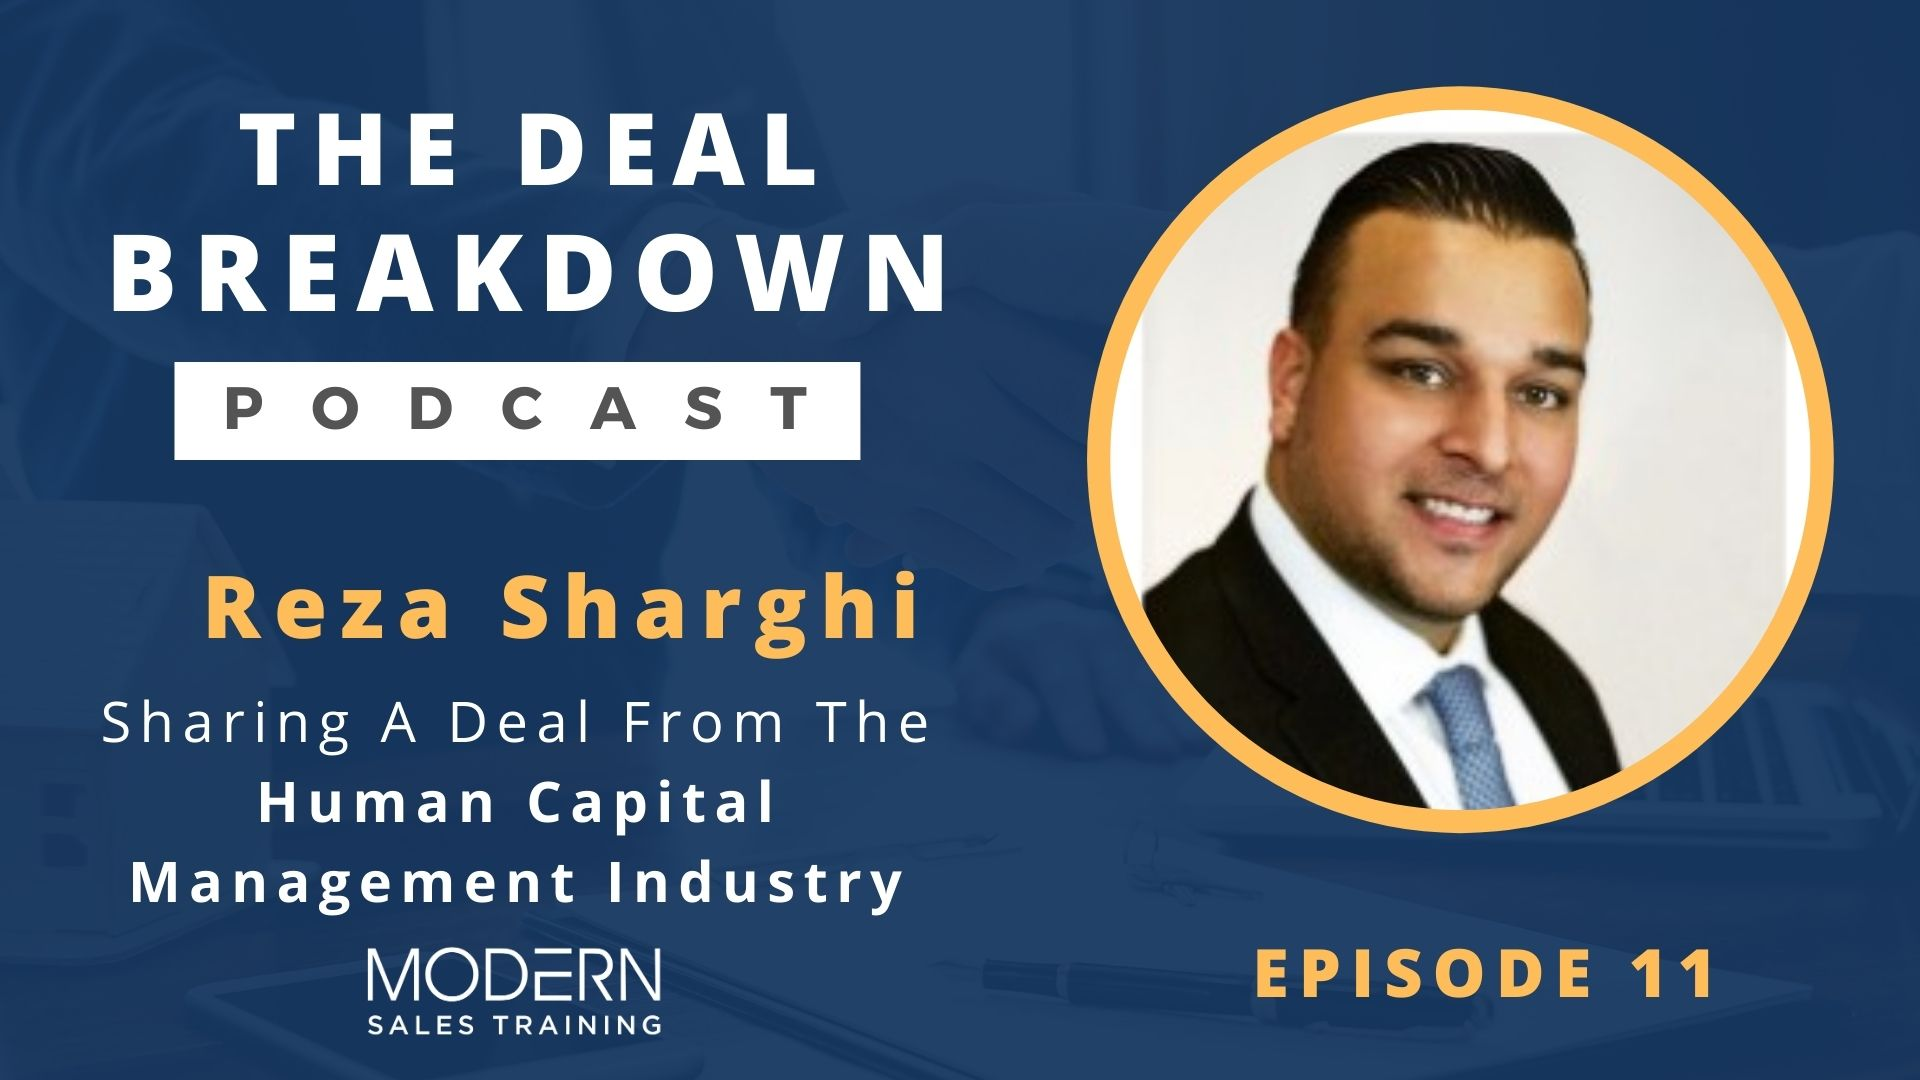 The-Deal-Breakdown-Podcast-Modern-Sales-Training-Reza-Sharghi